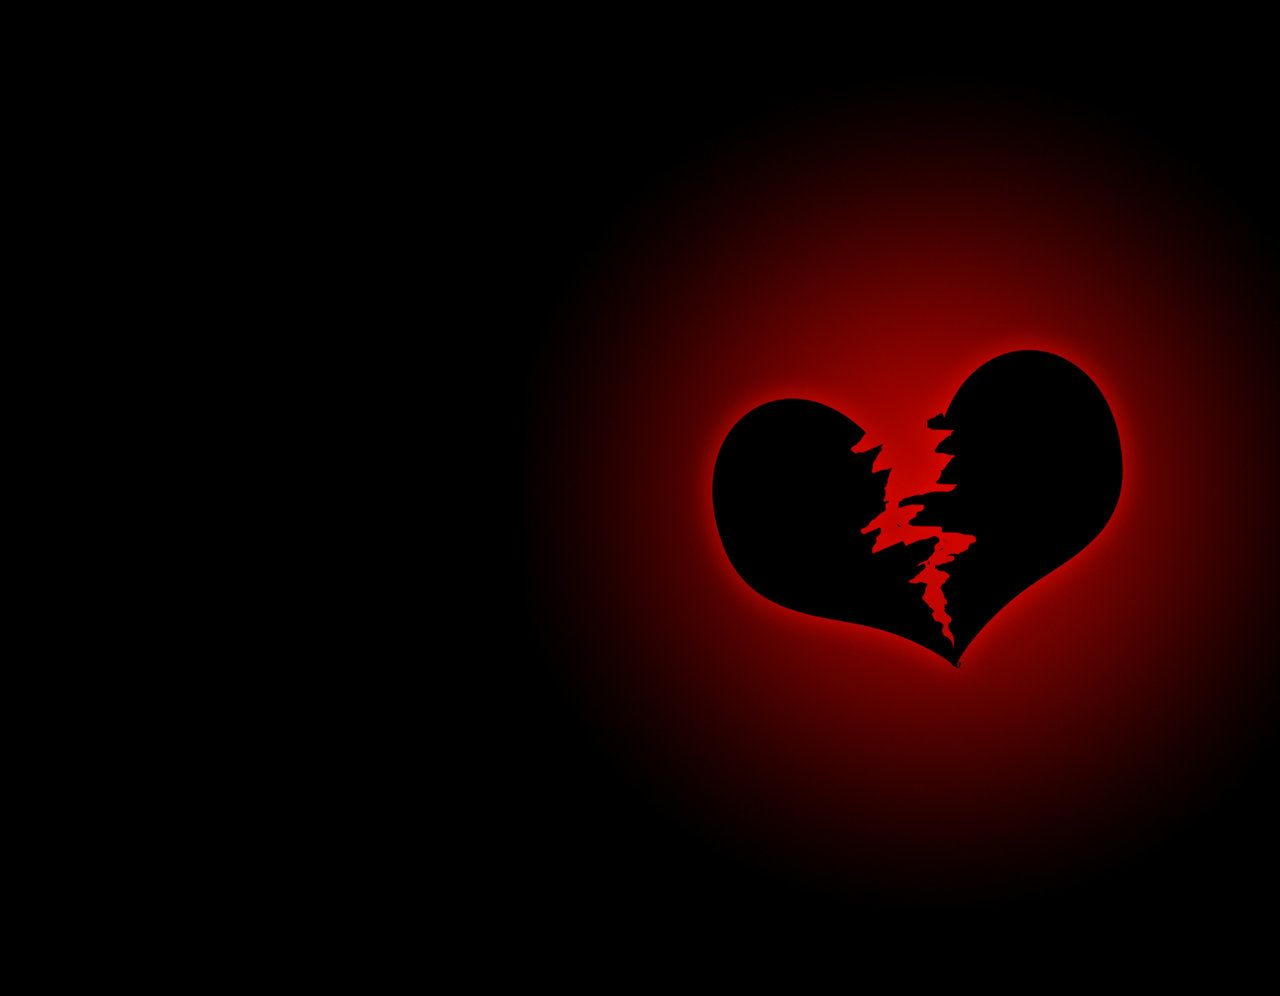 Sad Love cartoon Hd Wallpaper : Broken hearts wallpaper #97985 at Love Wallpapers 1080p HD ... Broken Heart Pinterest ...